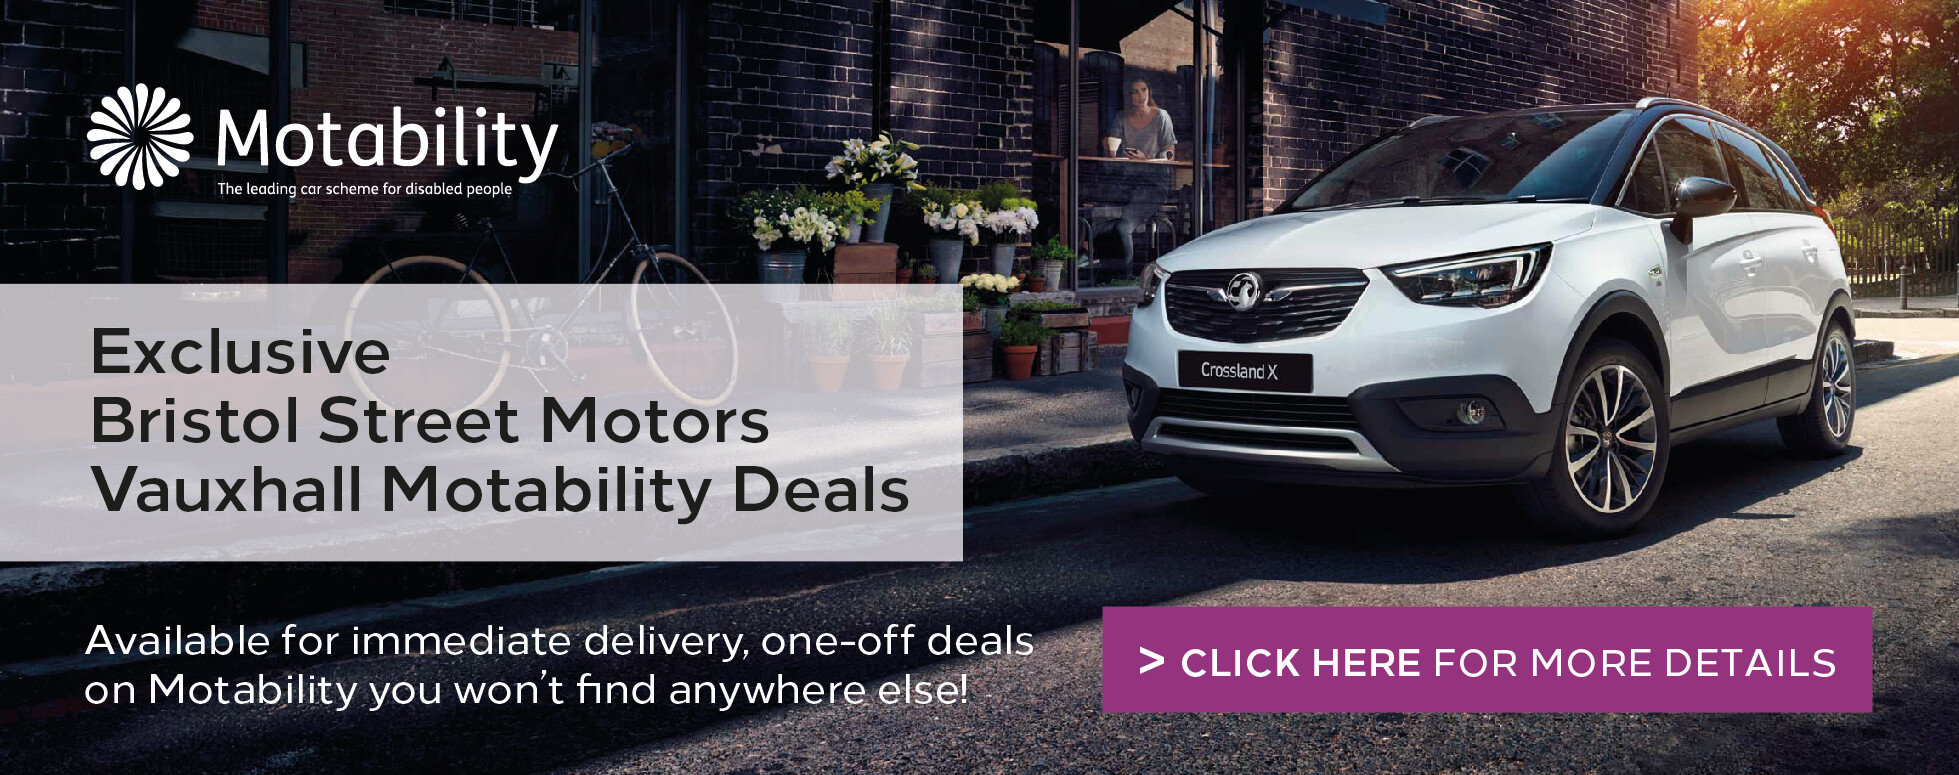 Vauxhall Motability Manager Specials